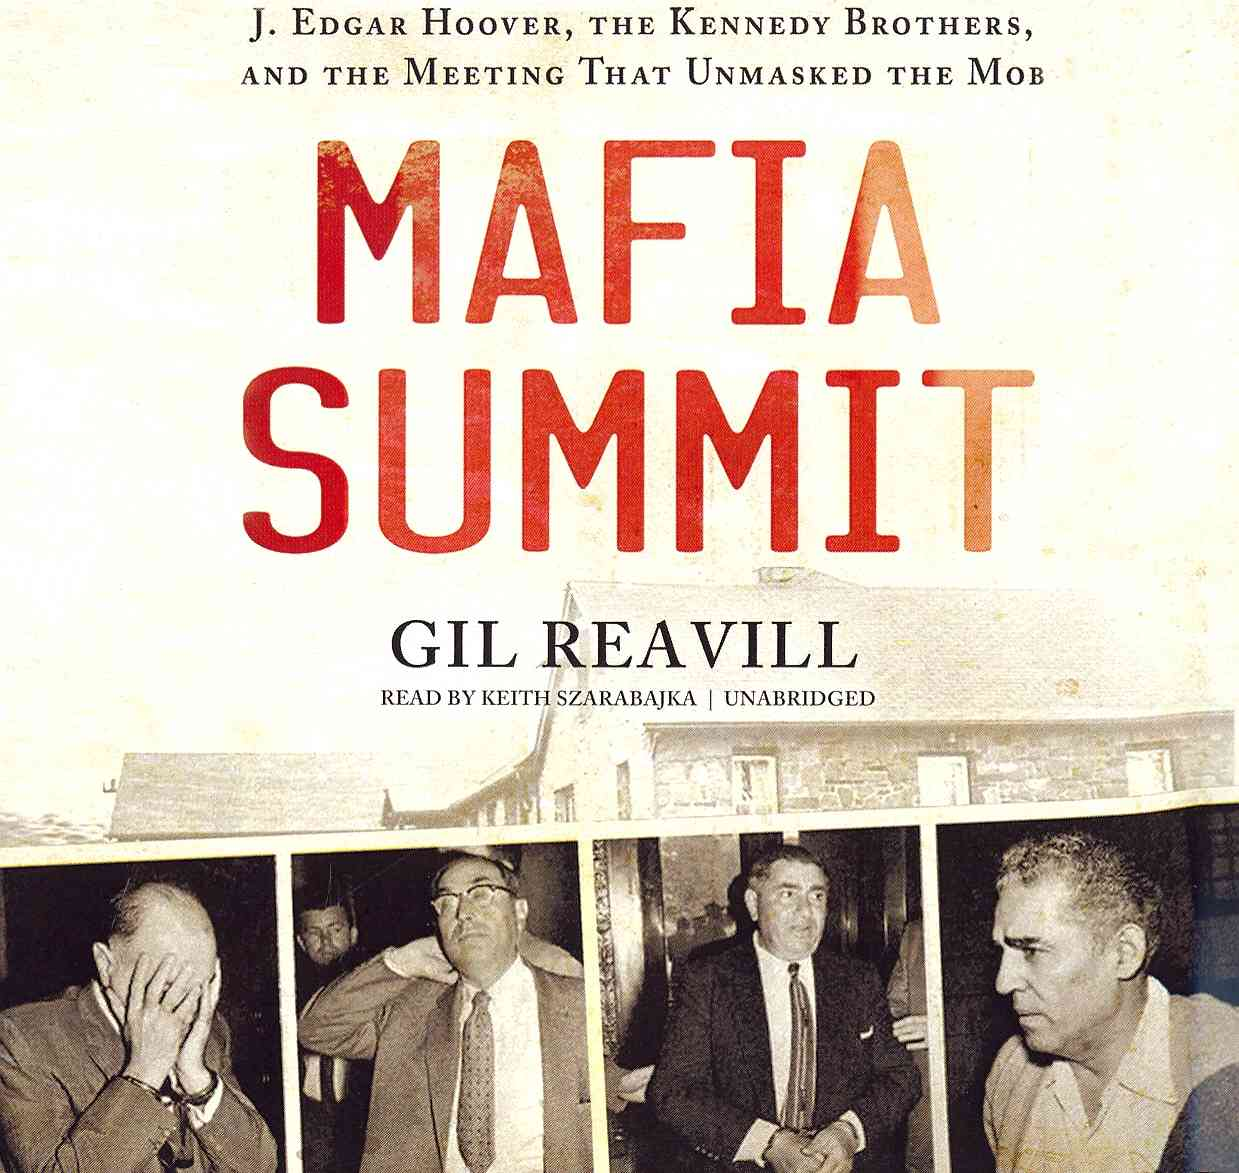 Mafia Summit: J. Edgar Hoover, The Kennedy Brothers, And The Meeting That Unmasked the Mob: Library Edition (CD-Audio)